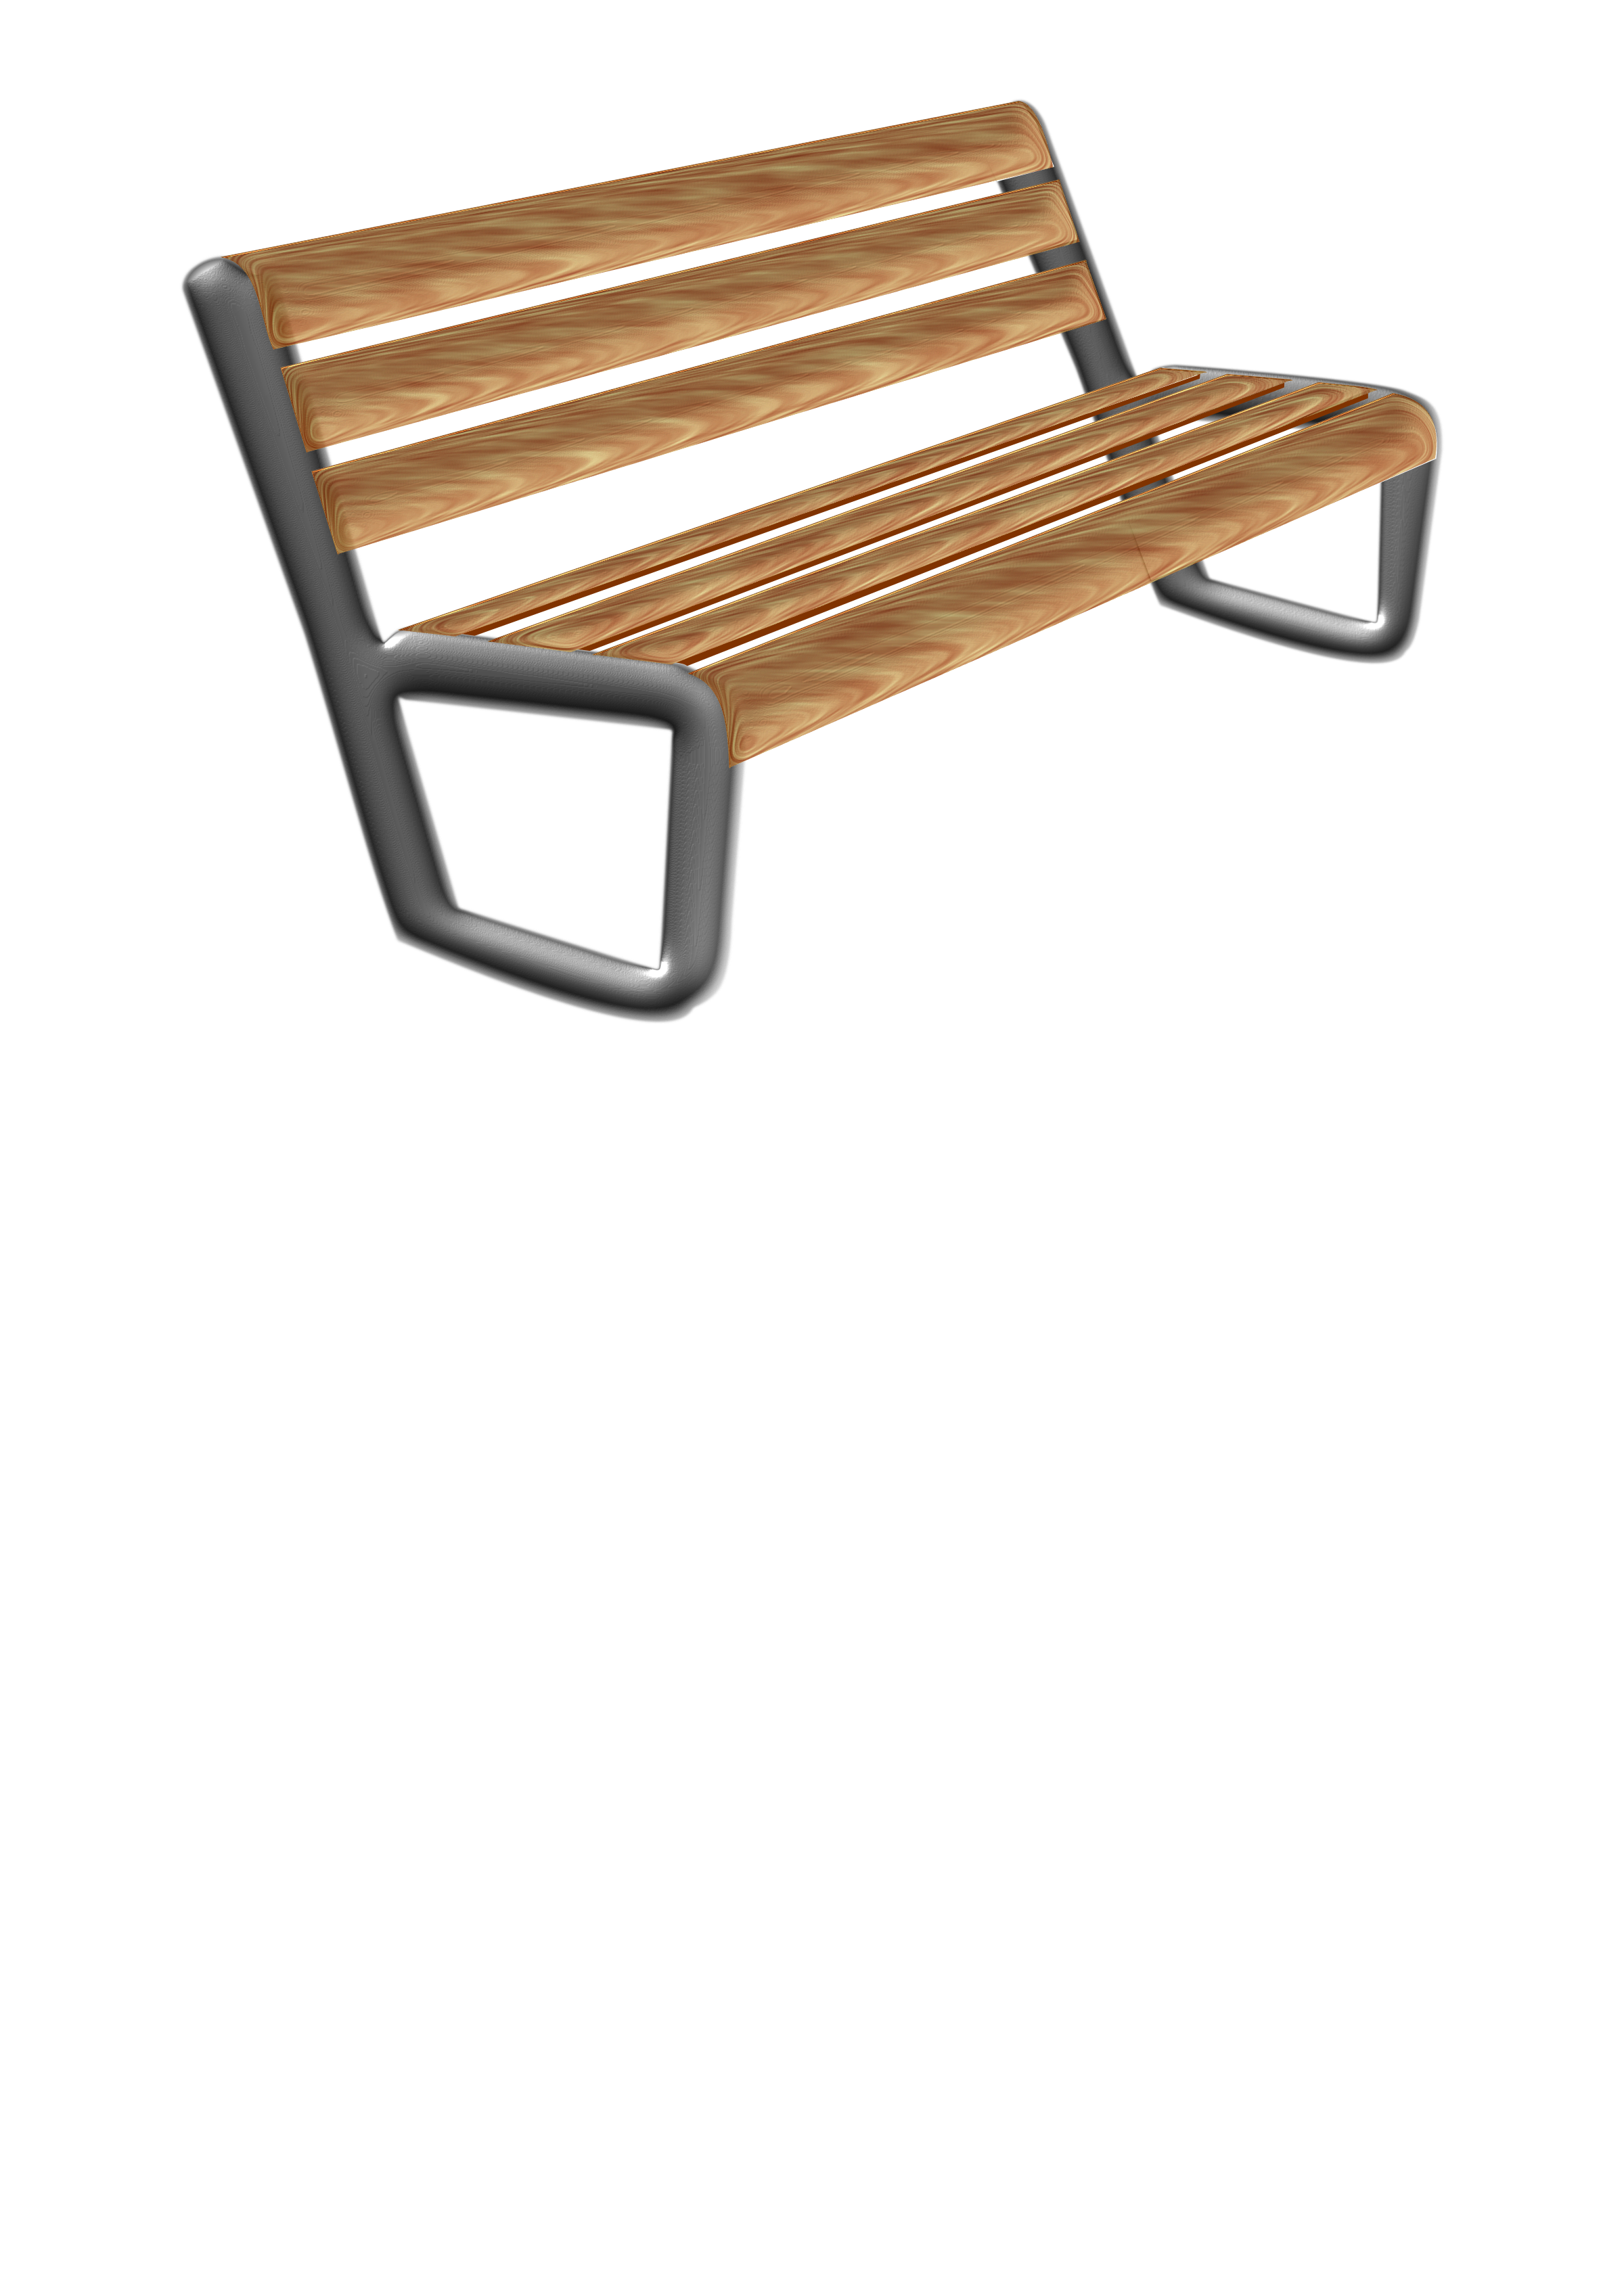 Modern bench - Banco moderno by rayucar